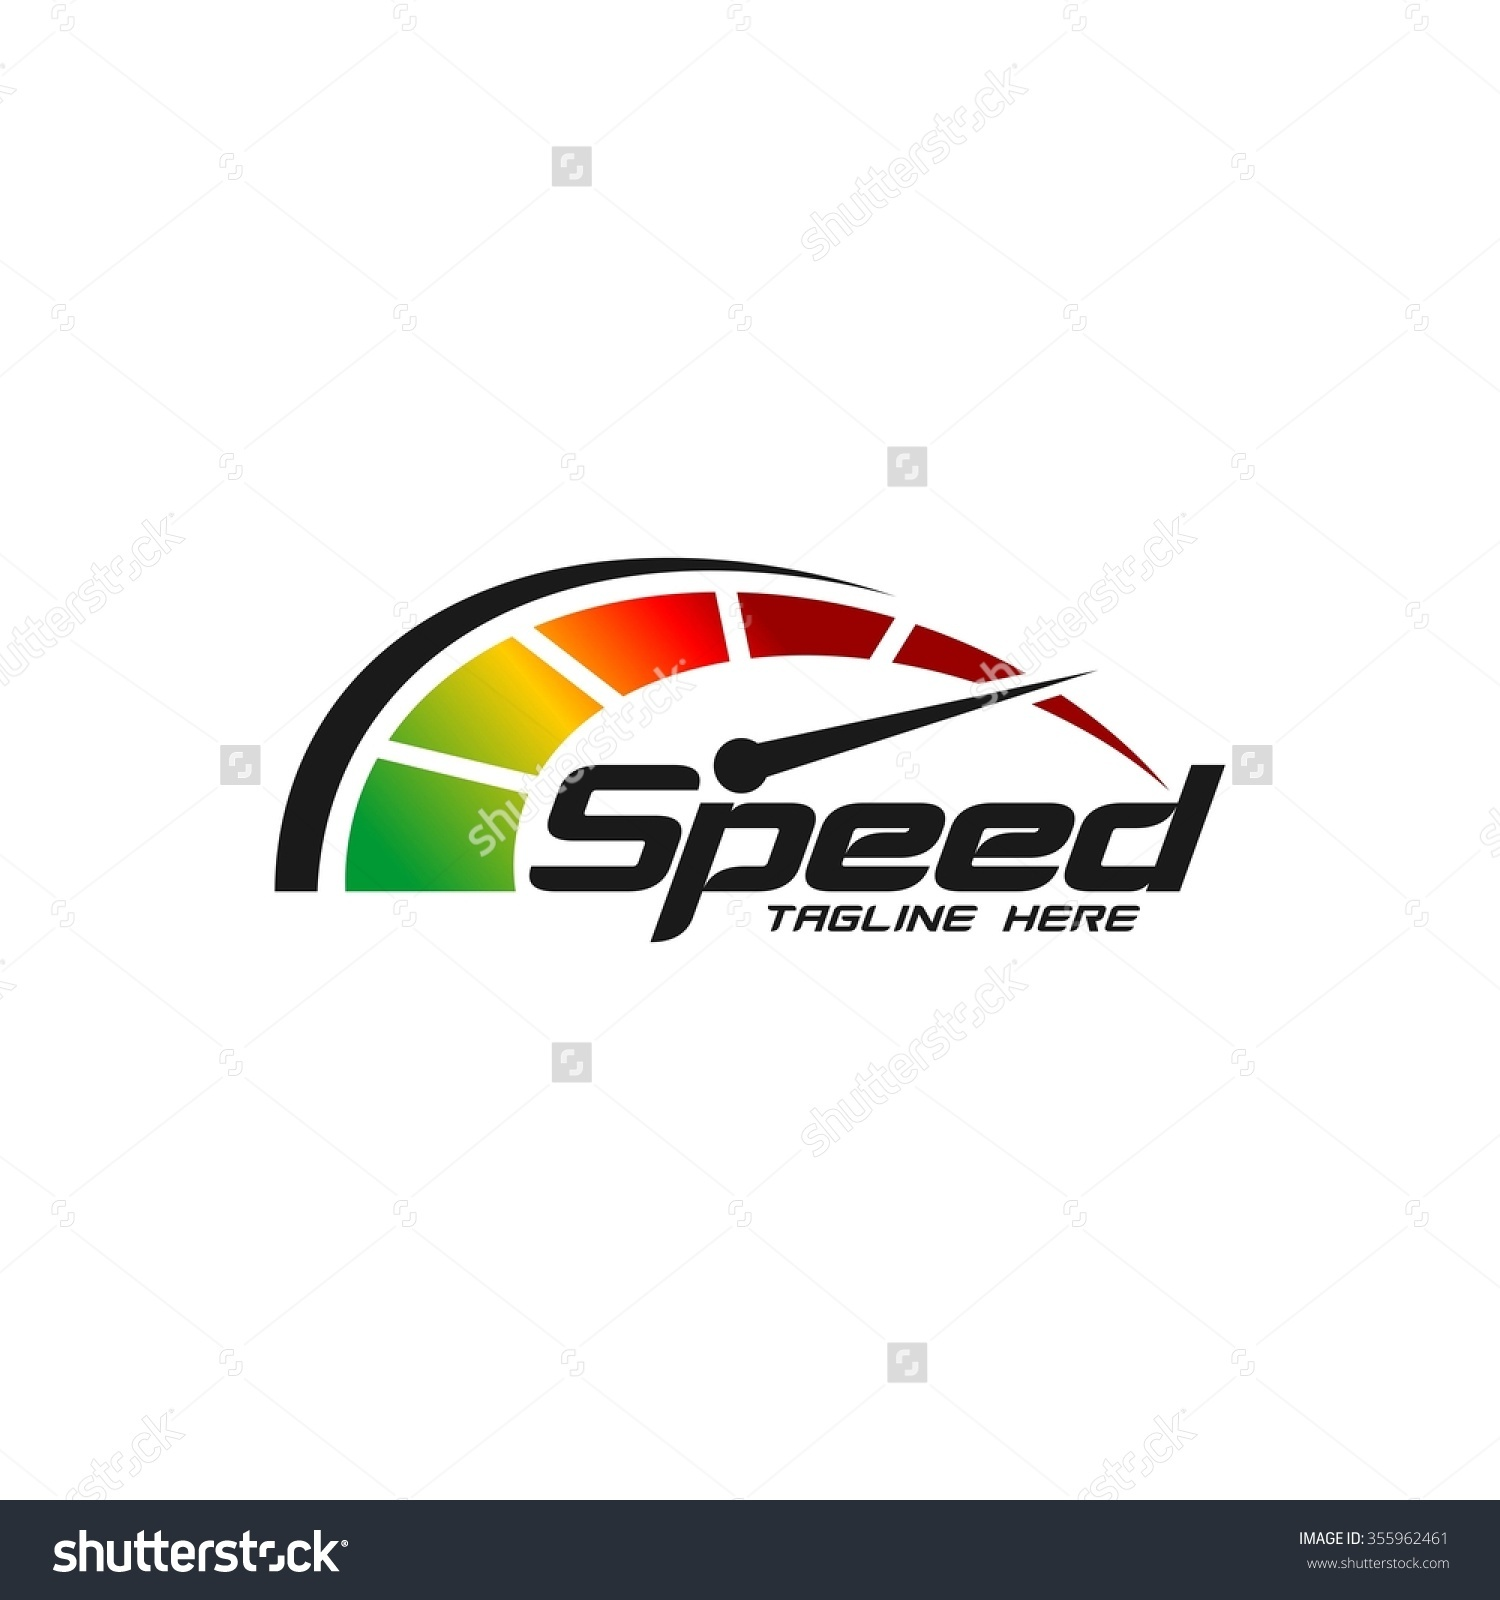 Speed logo clipart clip black and white stock Speed logo clipart - ClipartFest clip black and white stock